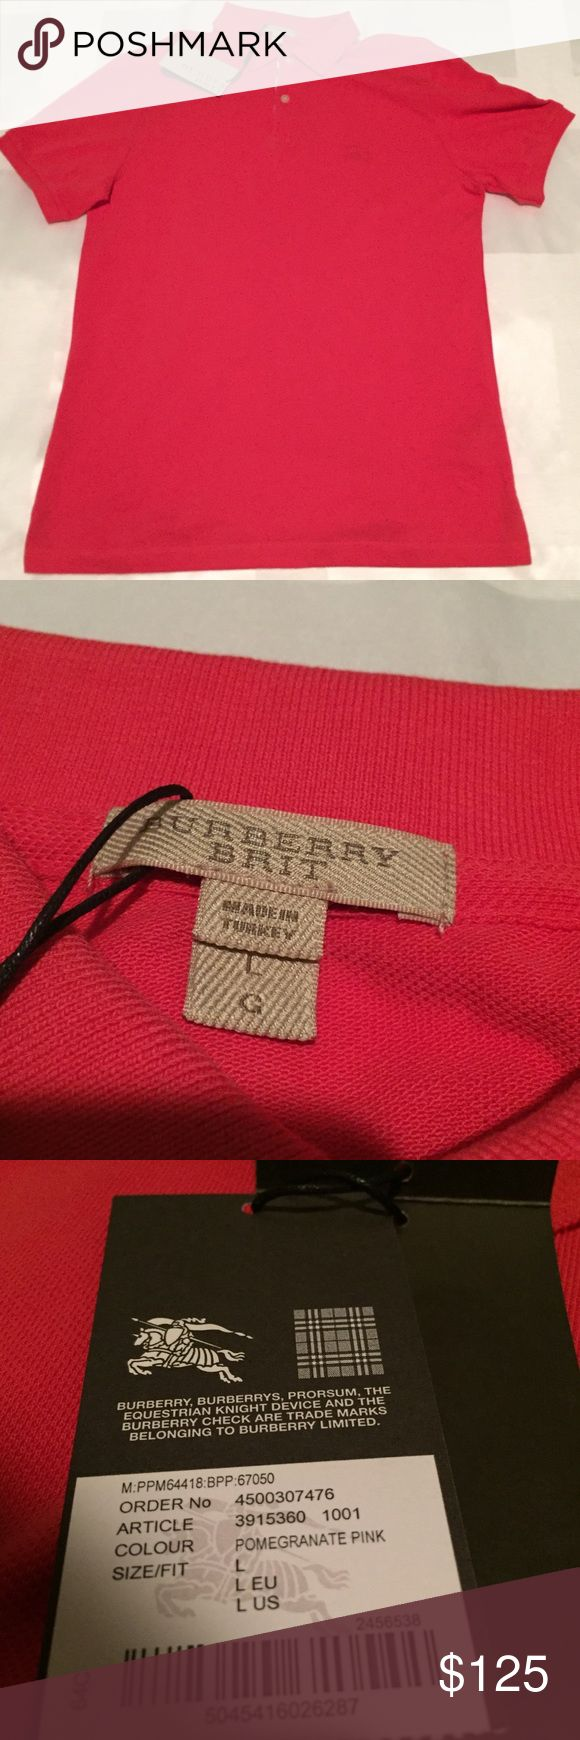 Burberry Men's Polo (Authentic) Was given as a gift but is to tight for my liking. Never worn or used  Original tags still attached Burberry Shirts Polos